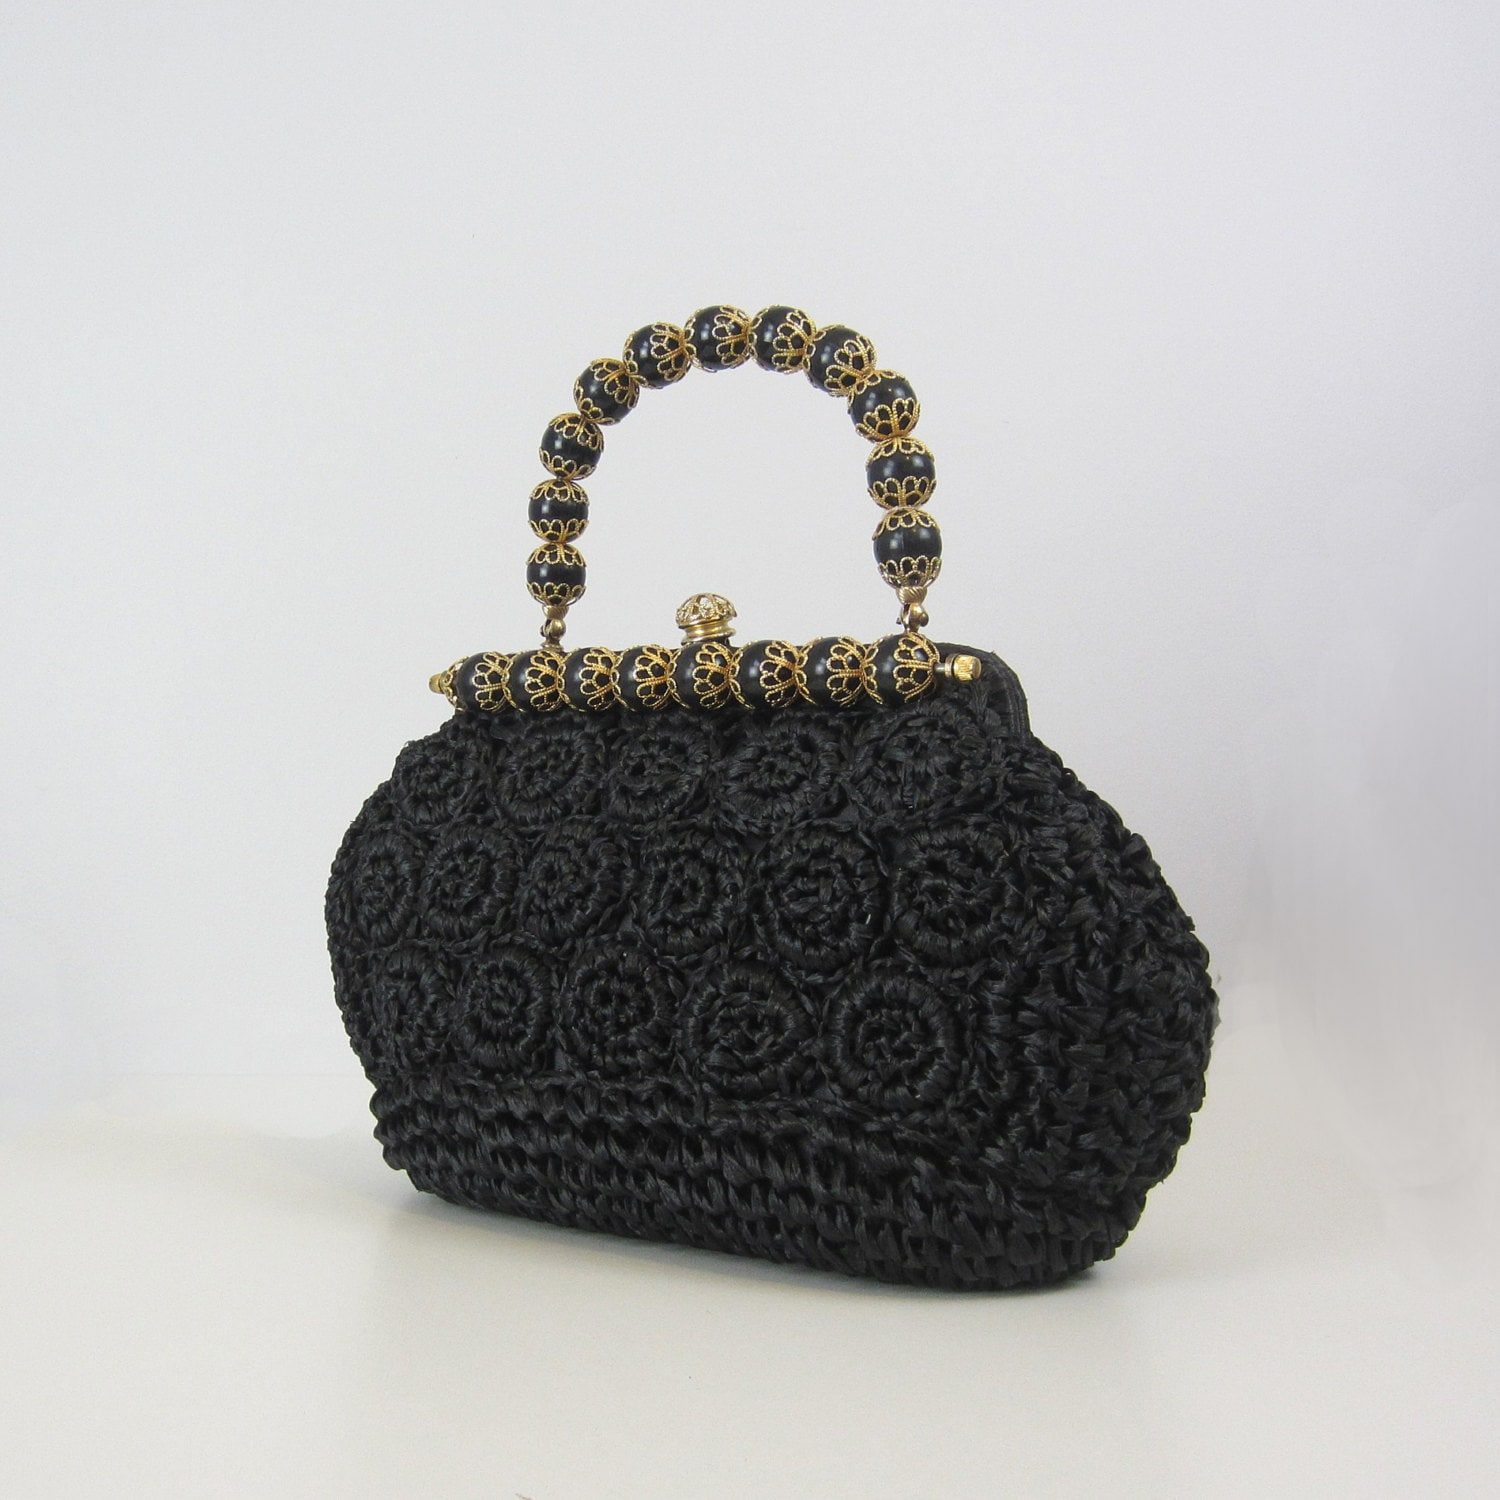 vintage woven straw handbag / 1960s straw bag / black / gold / woven purse / beaded - archetypevintage